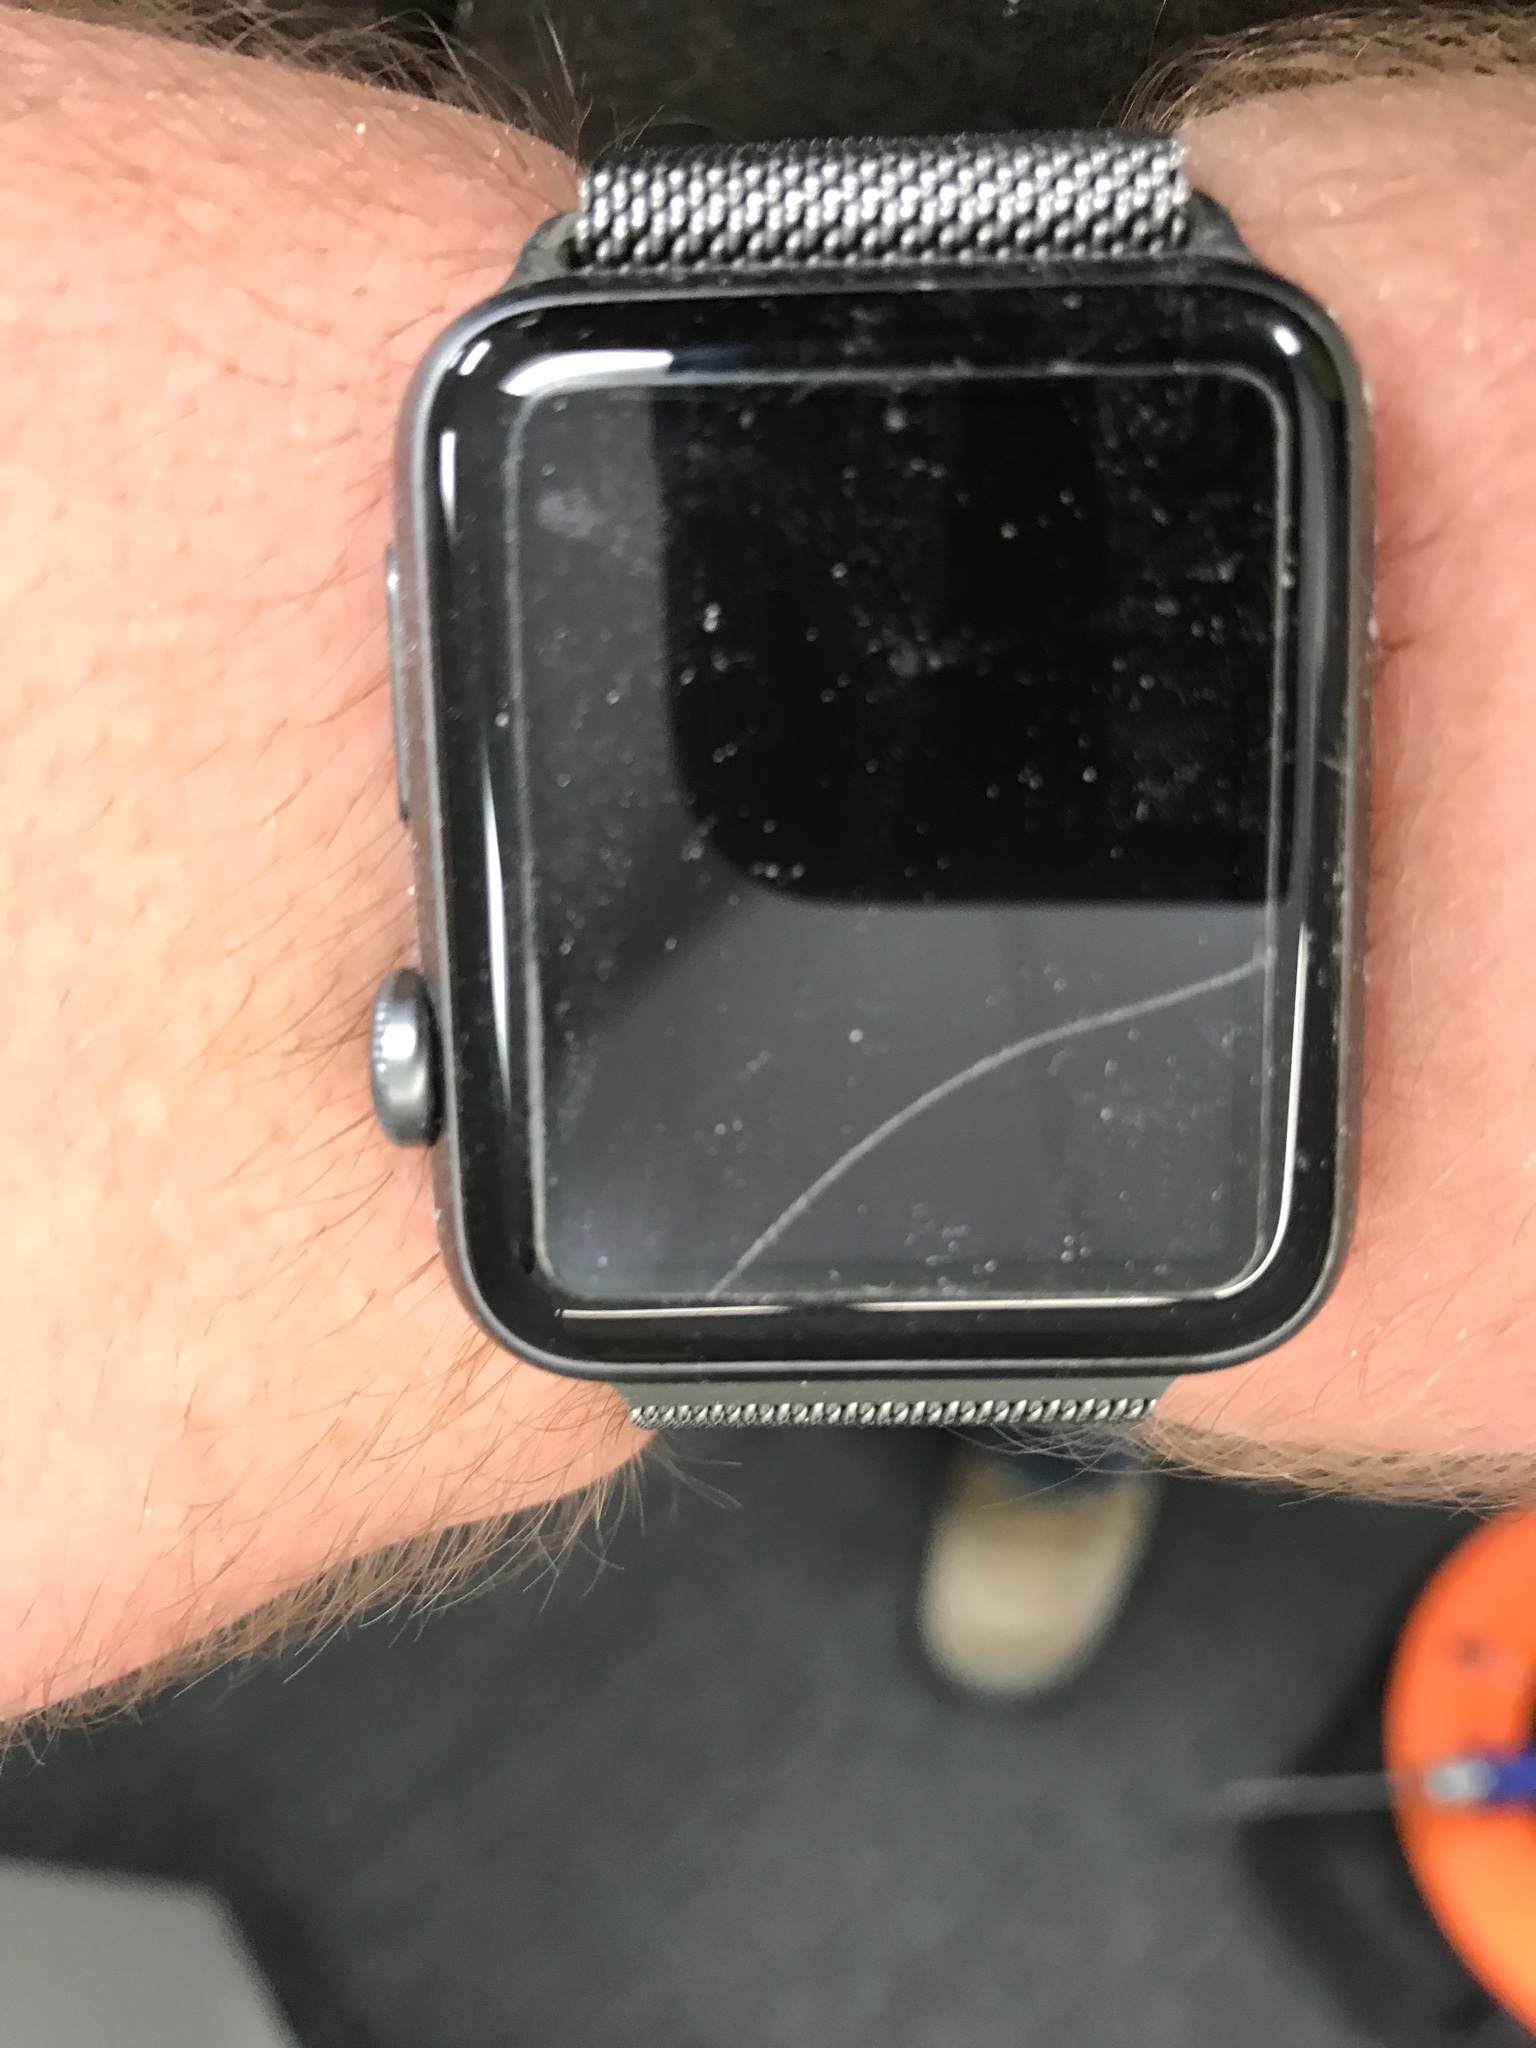 apple watch cracked screen wont turn on